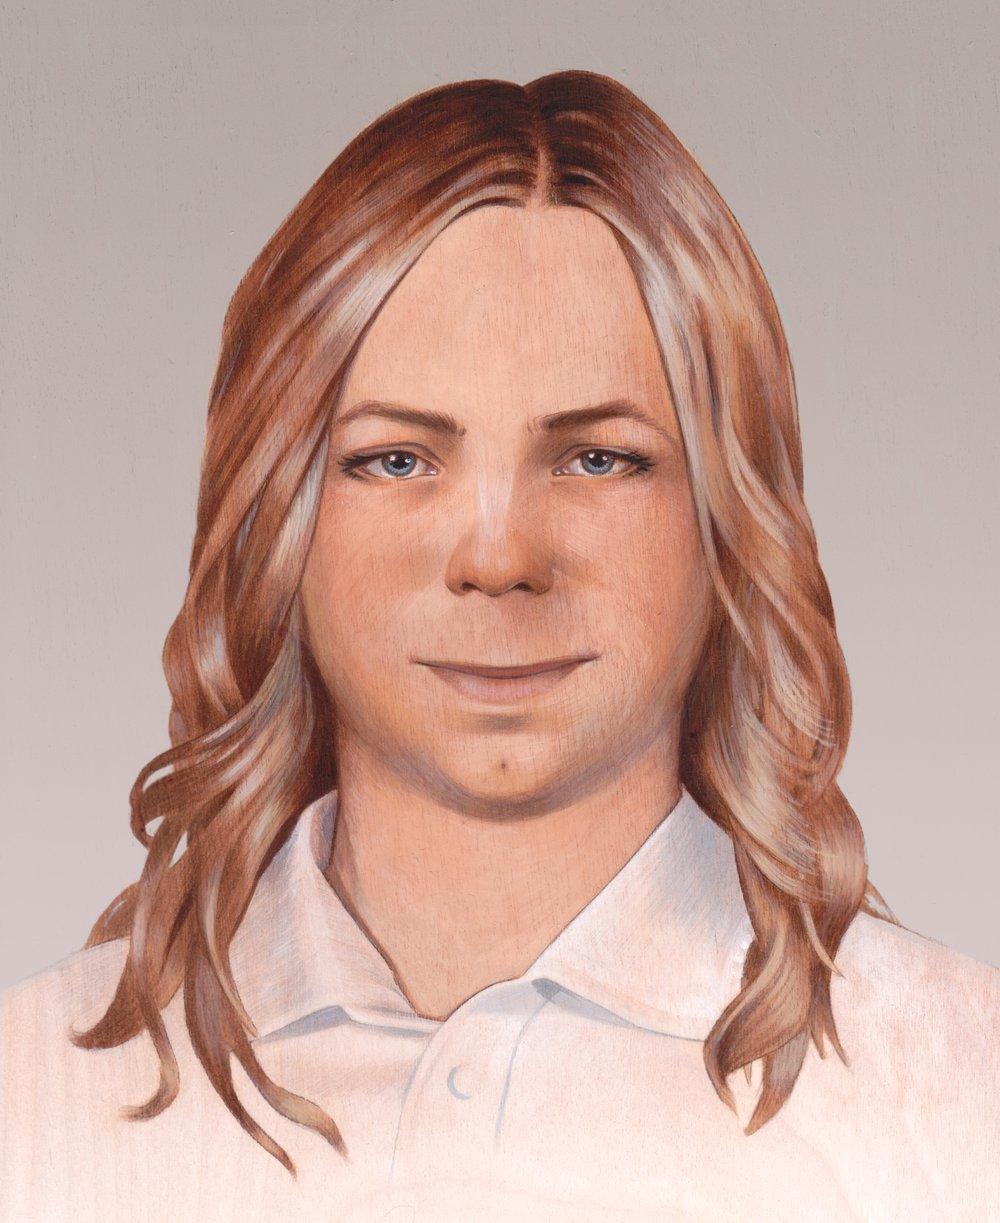 Final Painting of Chelsea Manning